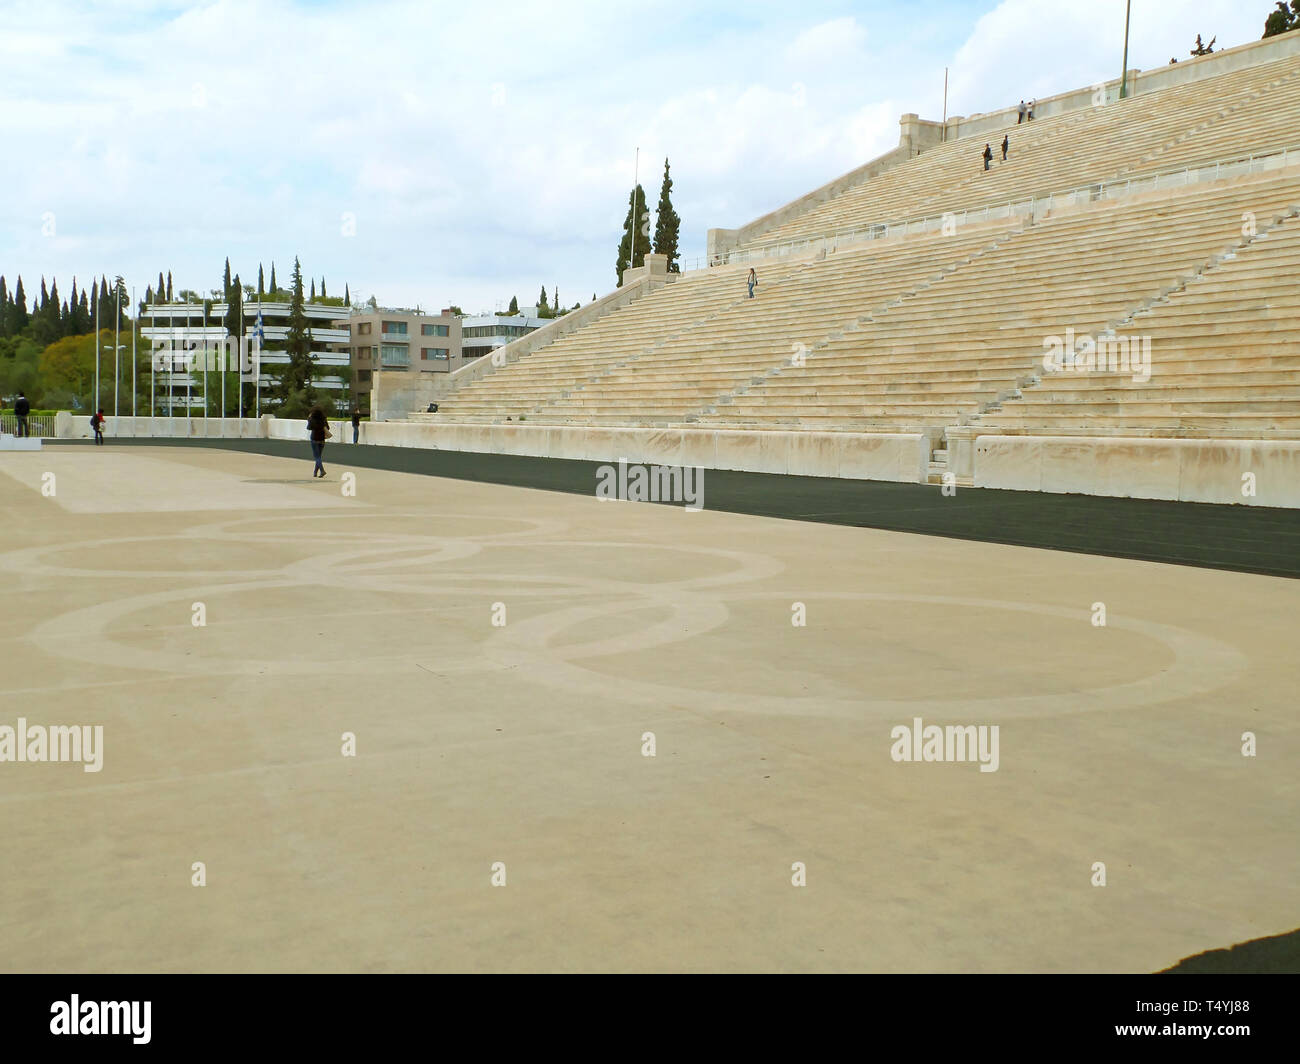 Panathenaic Stadium, Archaeological site in Athens of Greece, where the Olympic flame handover ceremony to the host nation takes place - Stock Image